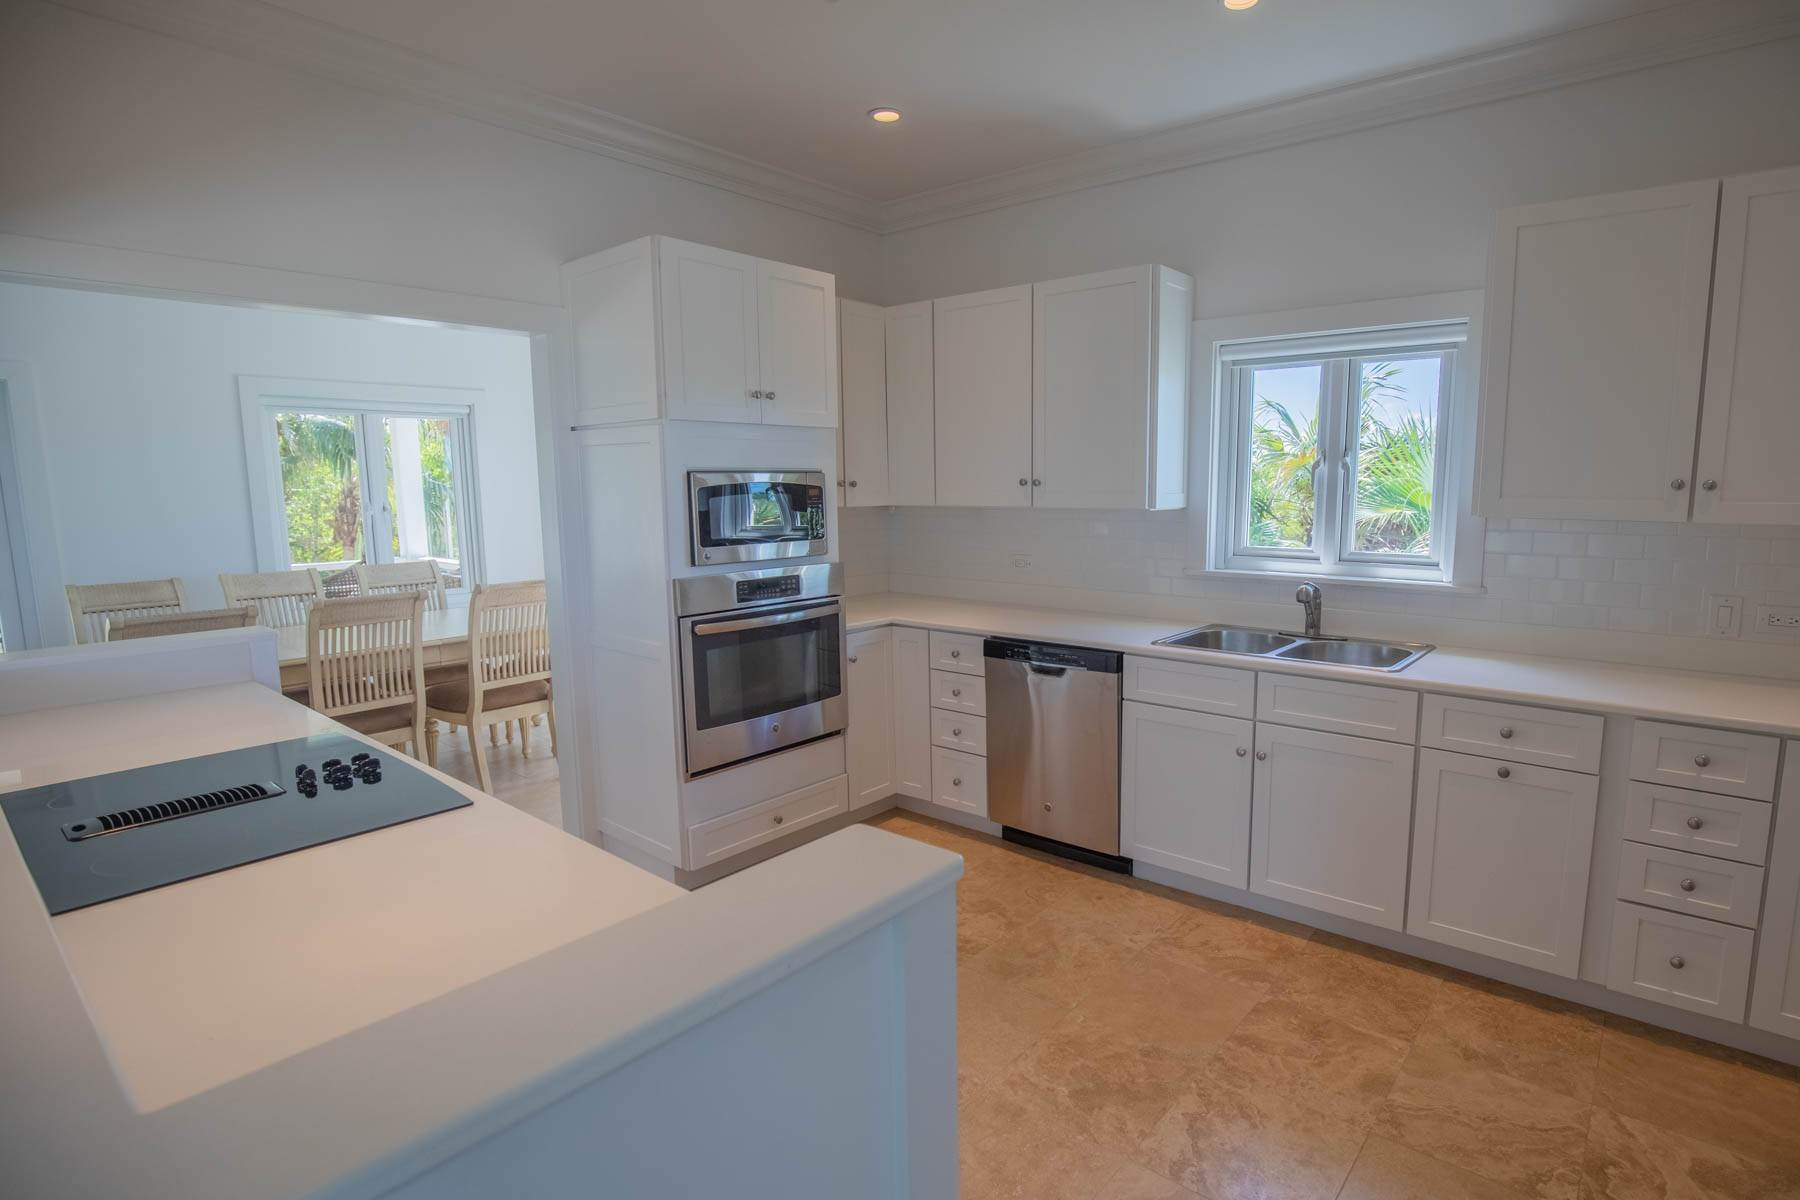 7. Single Family Homes for Sale at Savannah Sound Home - Windermere Island - MLS 44478 Windermere Island, Eleuthera, Bahamas